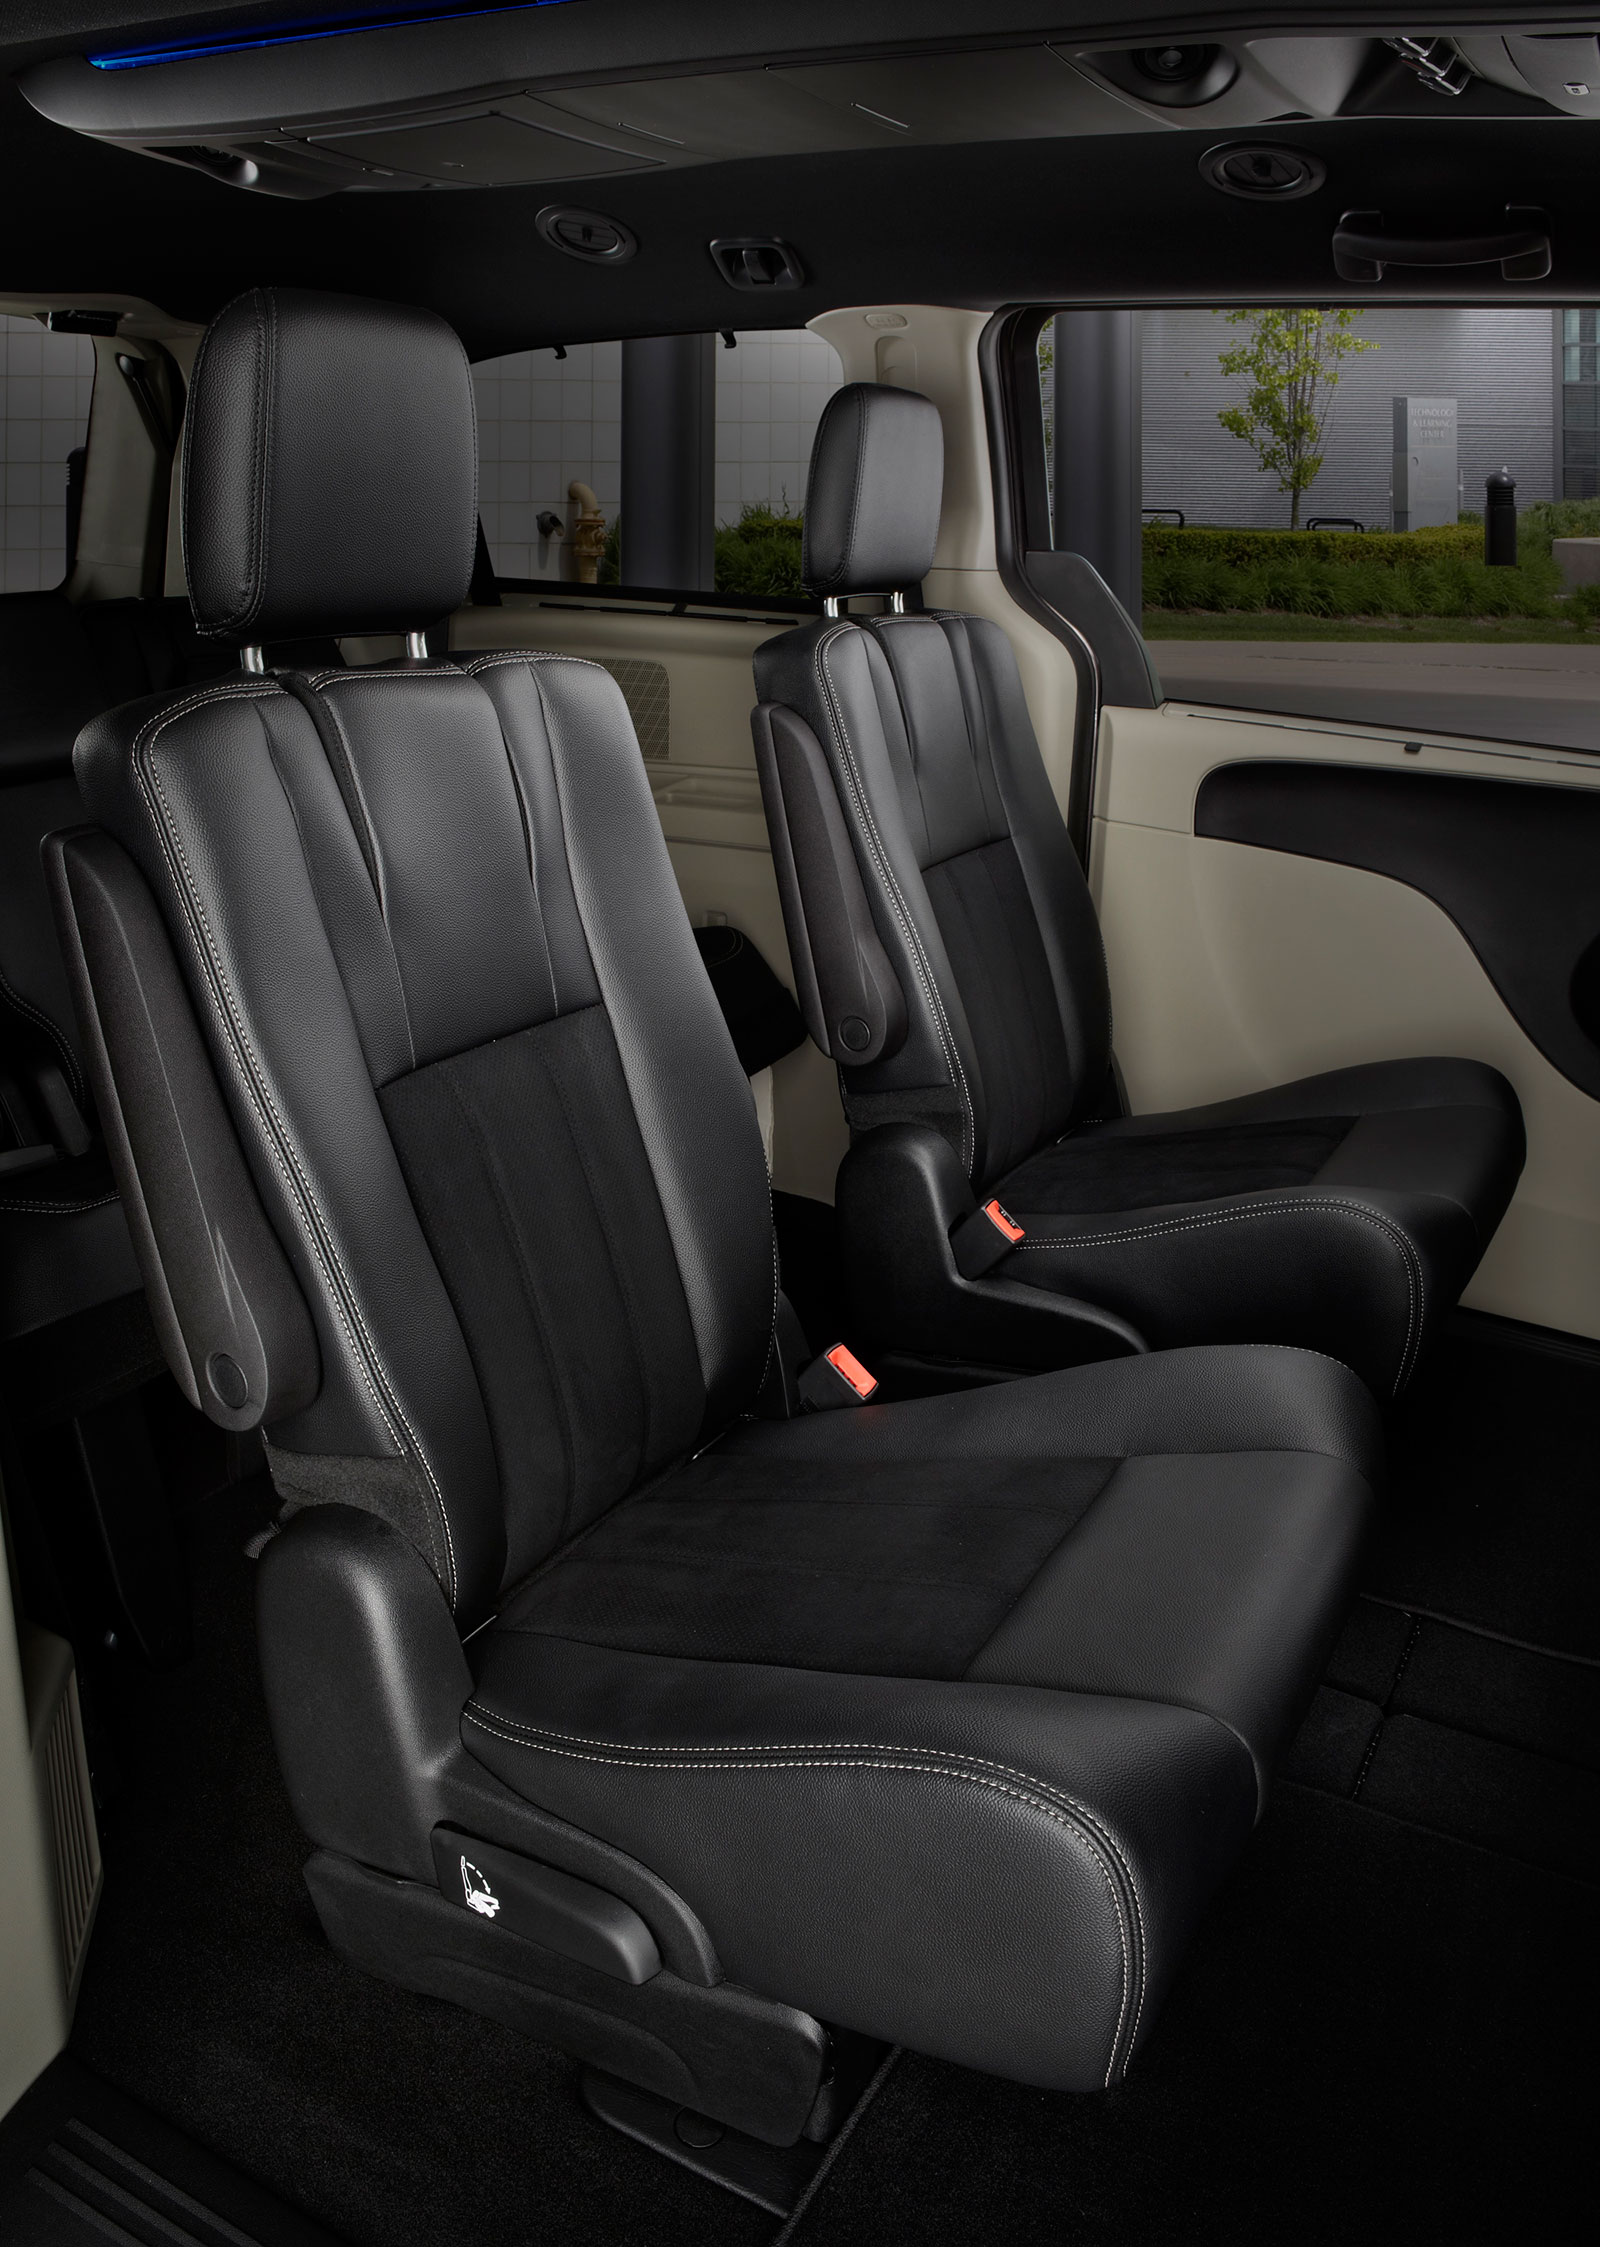 jackknife sofa with seat belts what does transitional mean dodge grand caravan seating chart awesome home